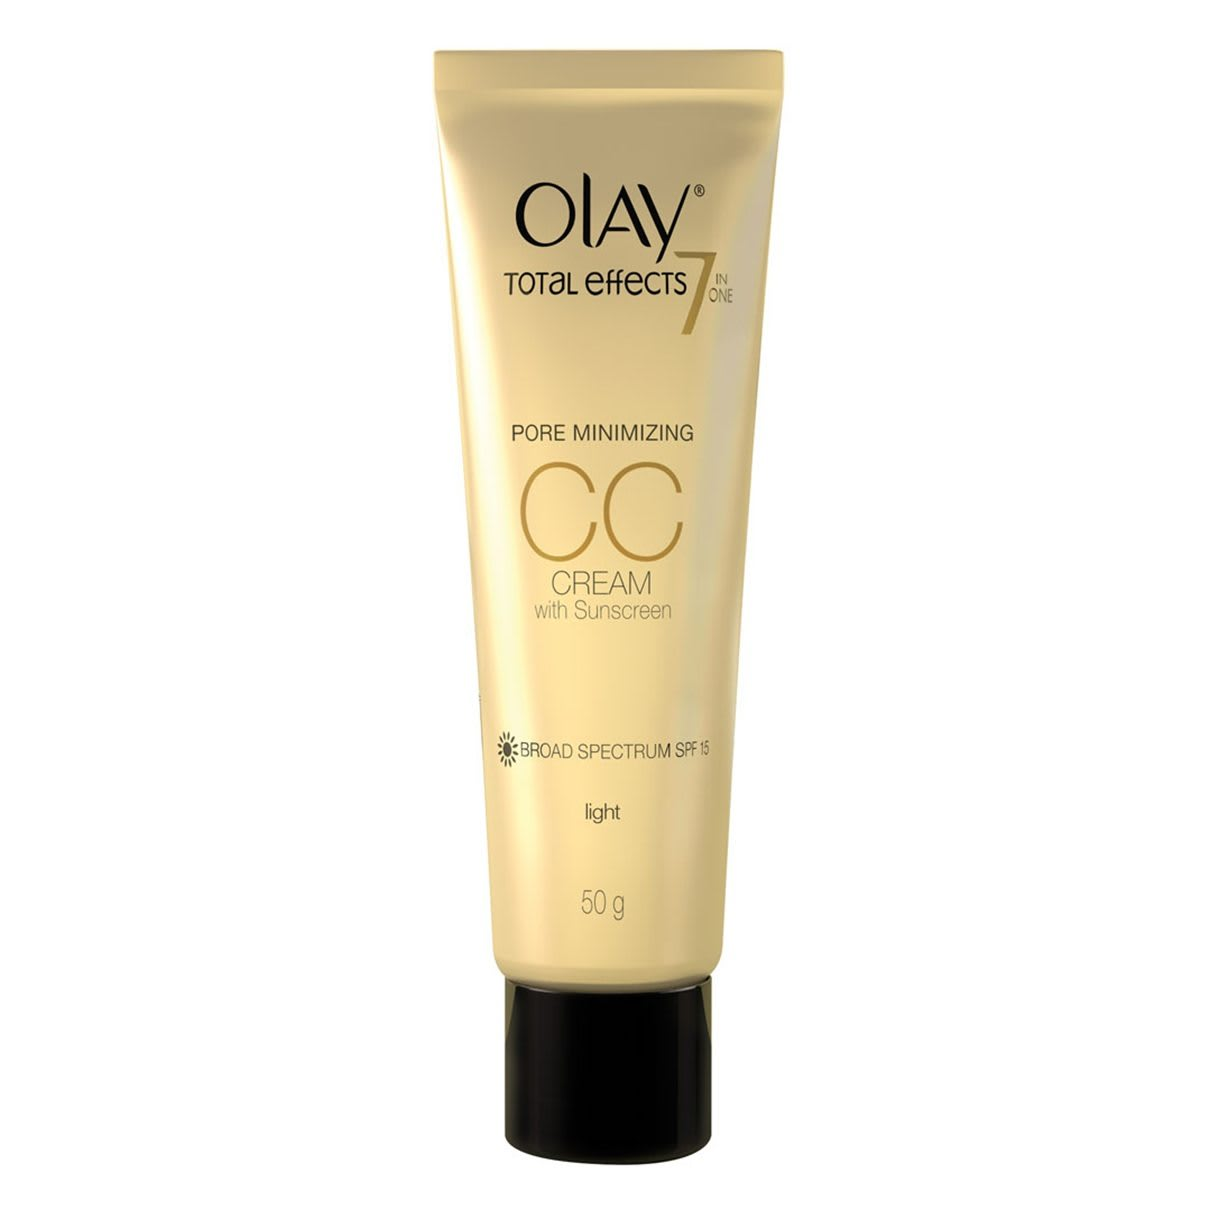 Olay Total Effects 7 in One Pore Minimizing CC Cream with Sunscreen SPF15 Light